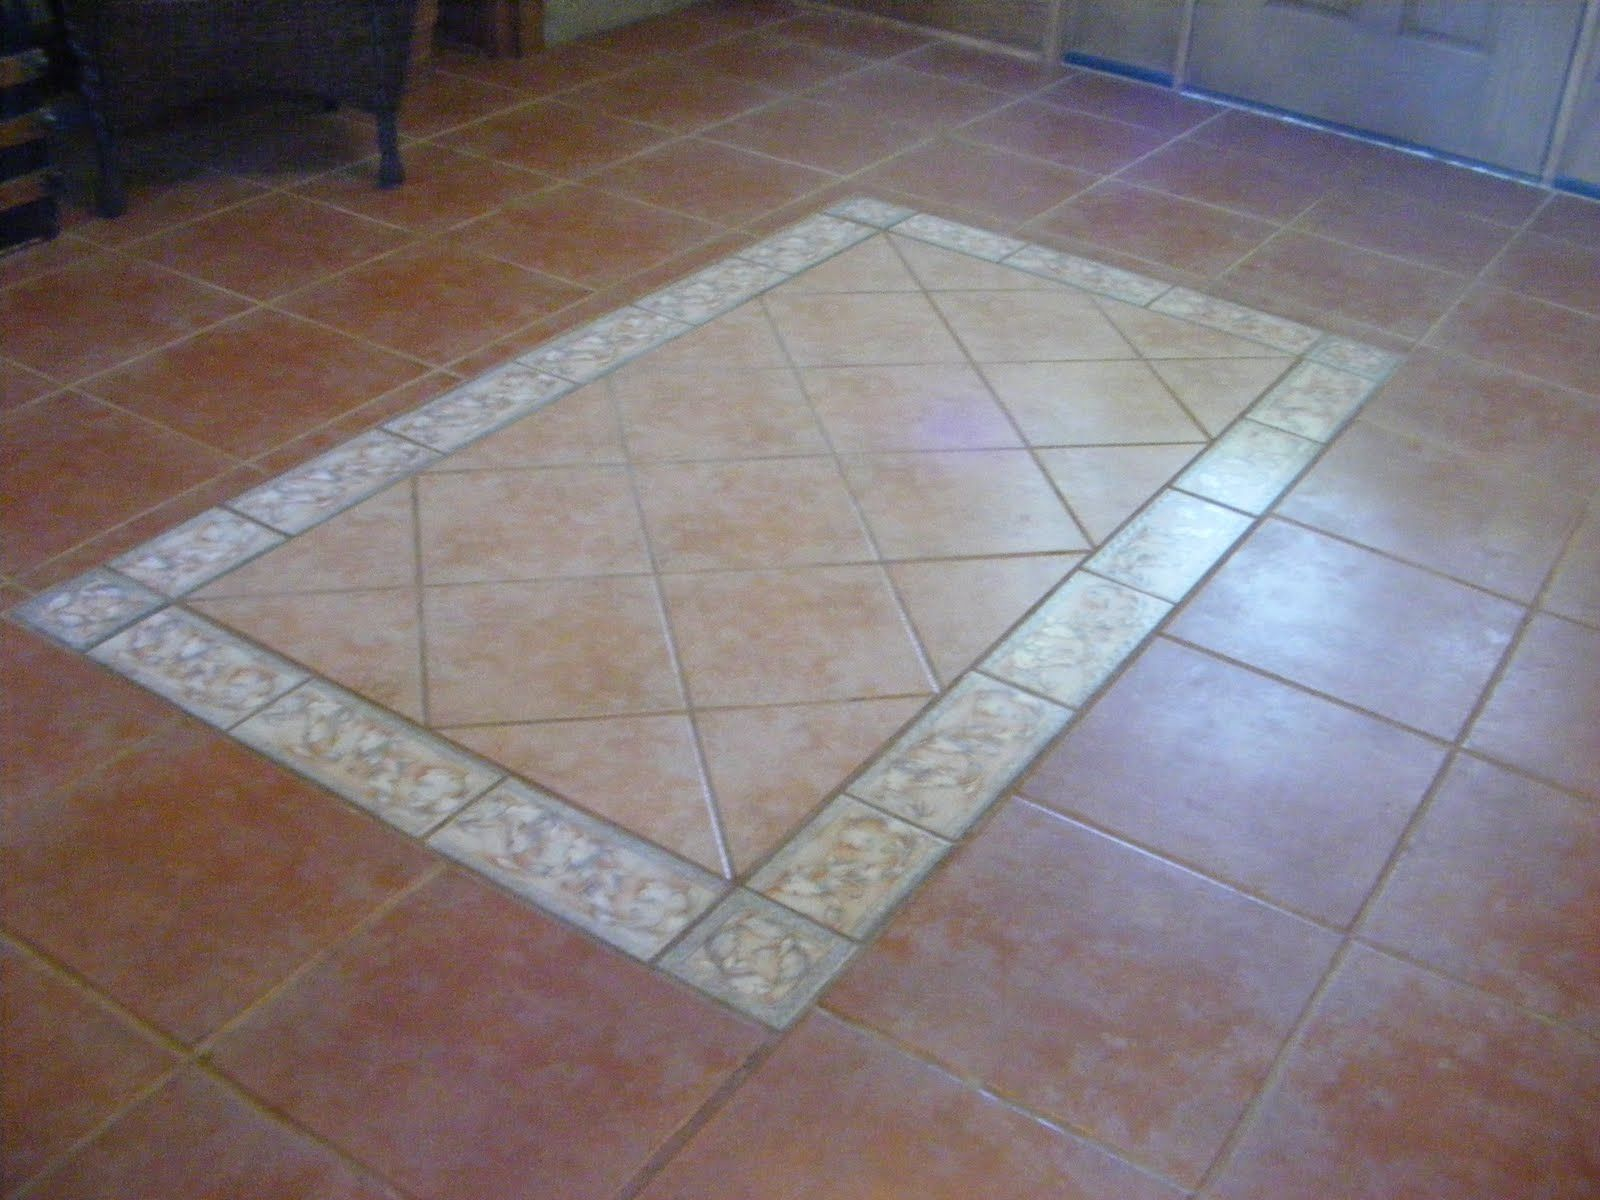 Decoration floor tile design patterns of new inspiration for Floor tiles design